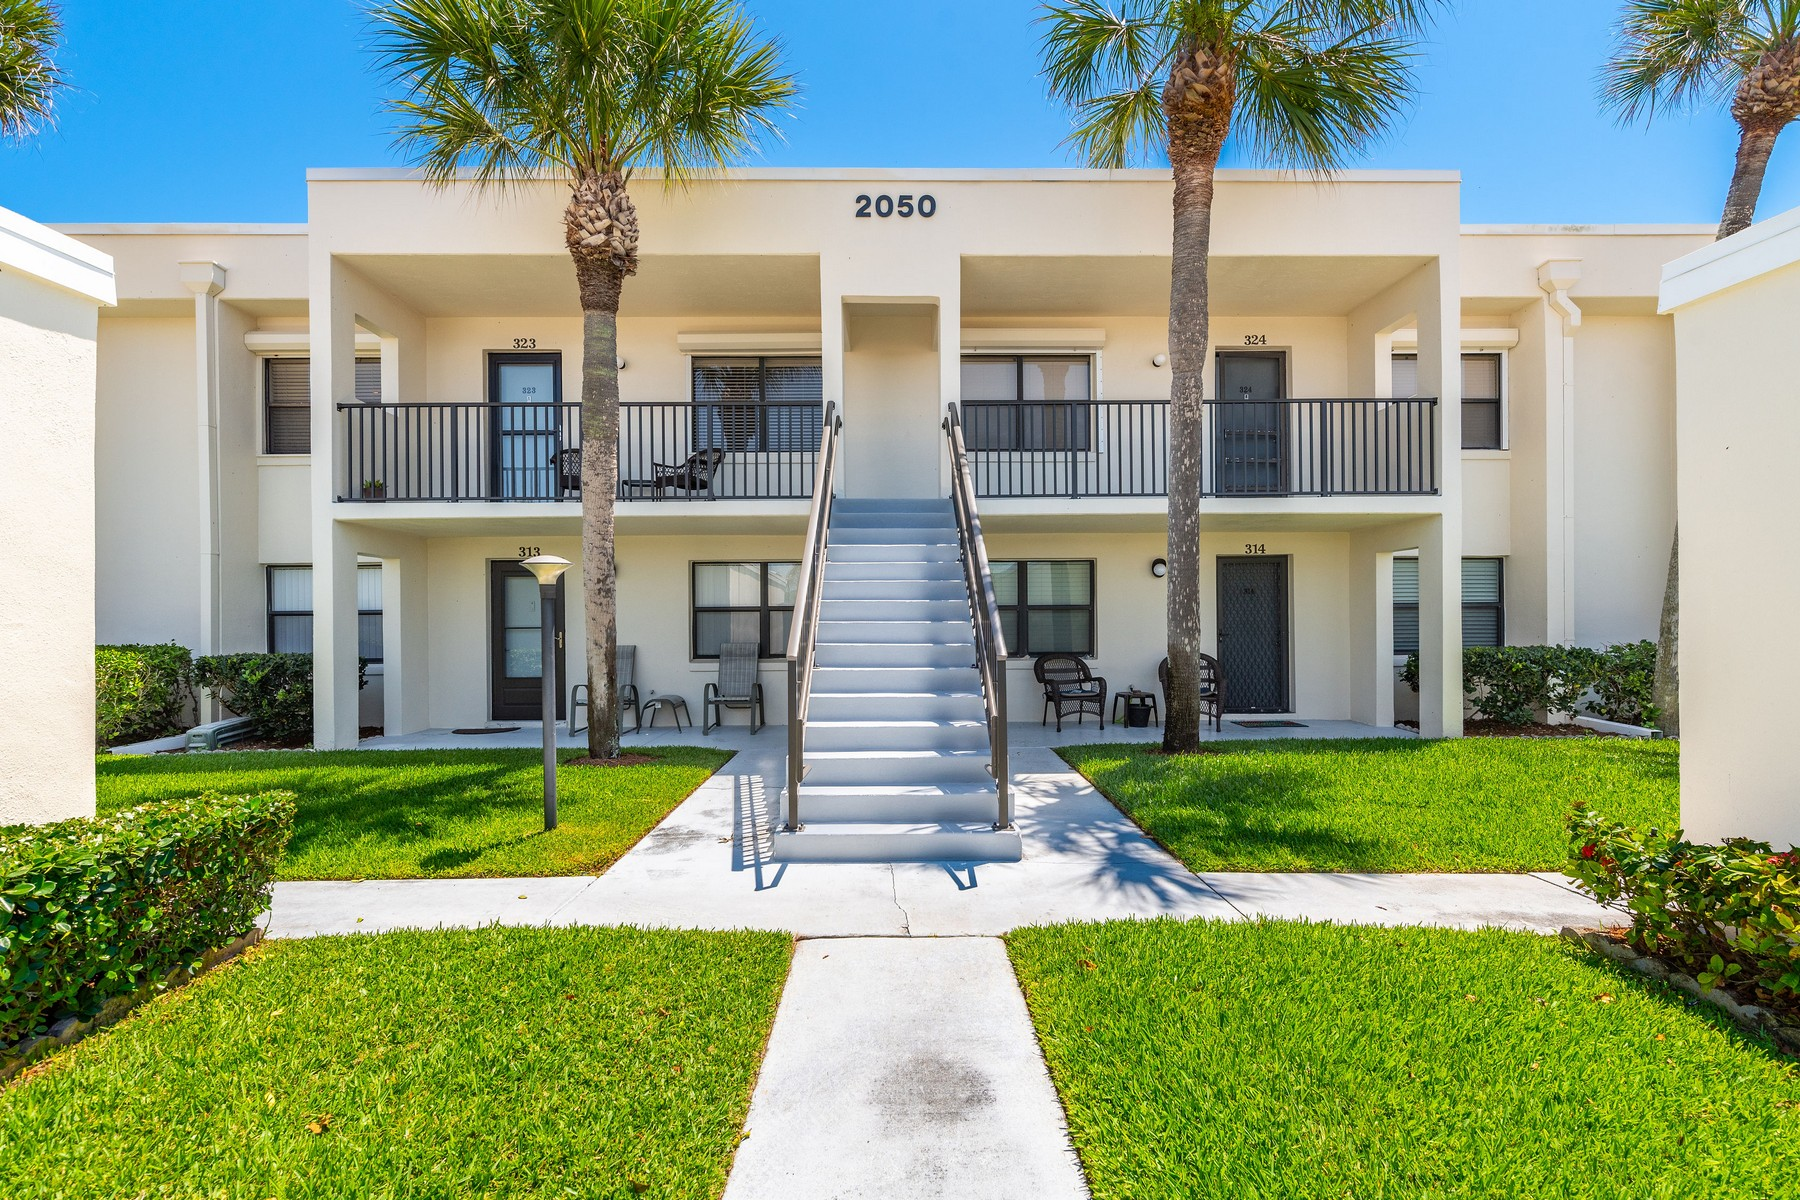 Property for Sale at Updated Condo with Fantastic Water Views 2050 Atlantic Street Unit 323 Melbourne Beach, Florida 32951 United States